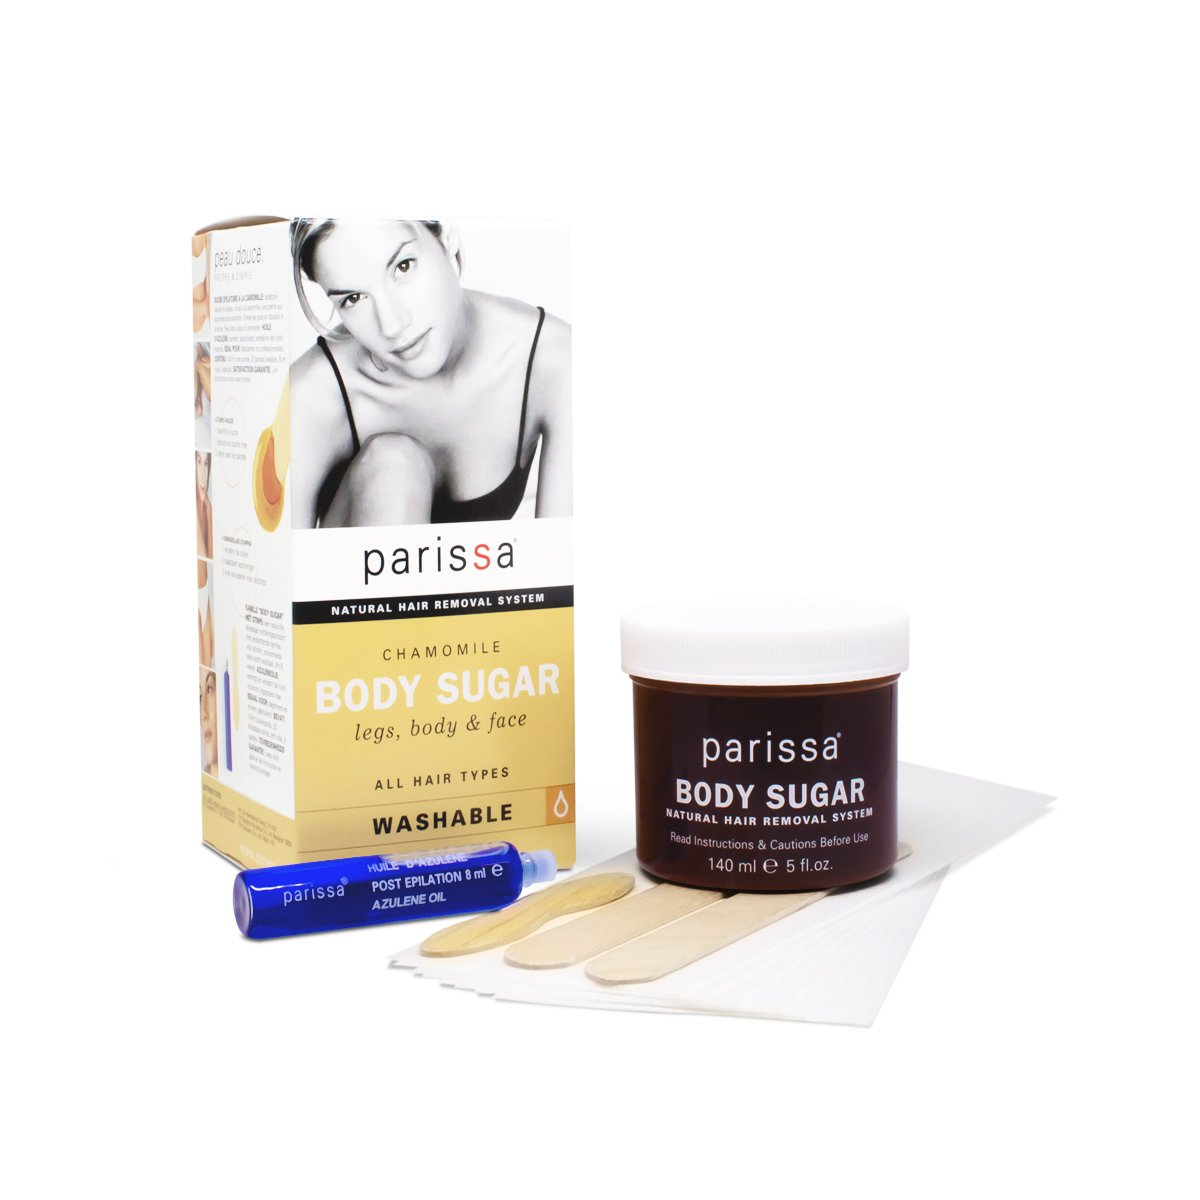 Parissa Chamomile Sugar Wax (Cold Wax), Waxing Kit for Hair Removal, 140ml (5 oz) Wax, Fabric strips, Spatulas & After-care Oil S170